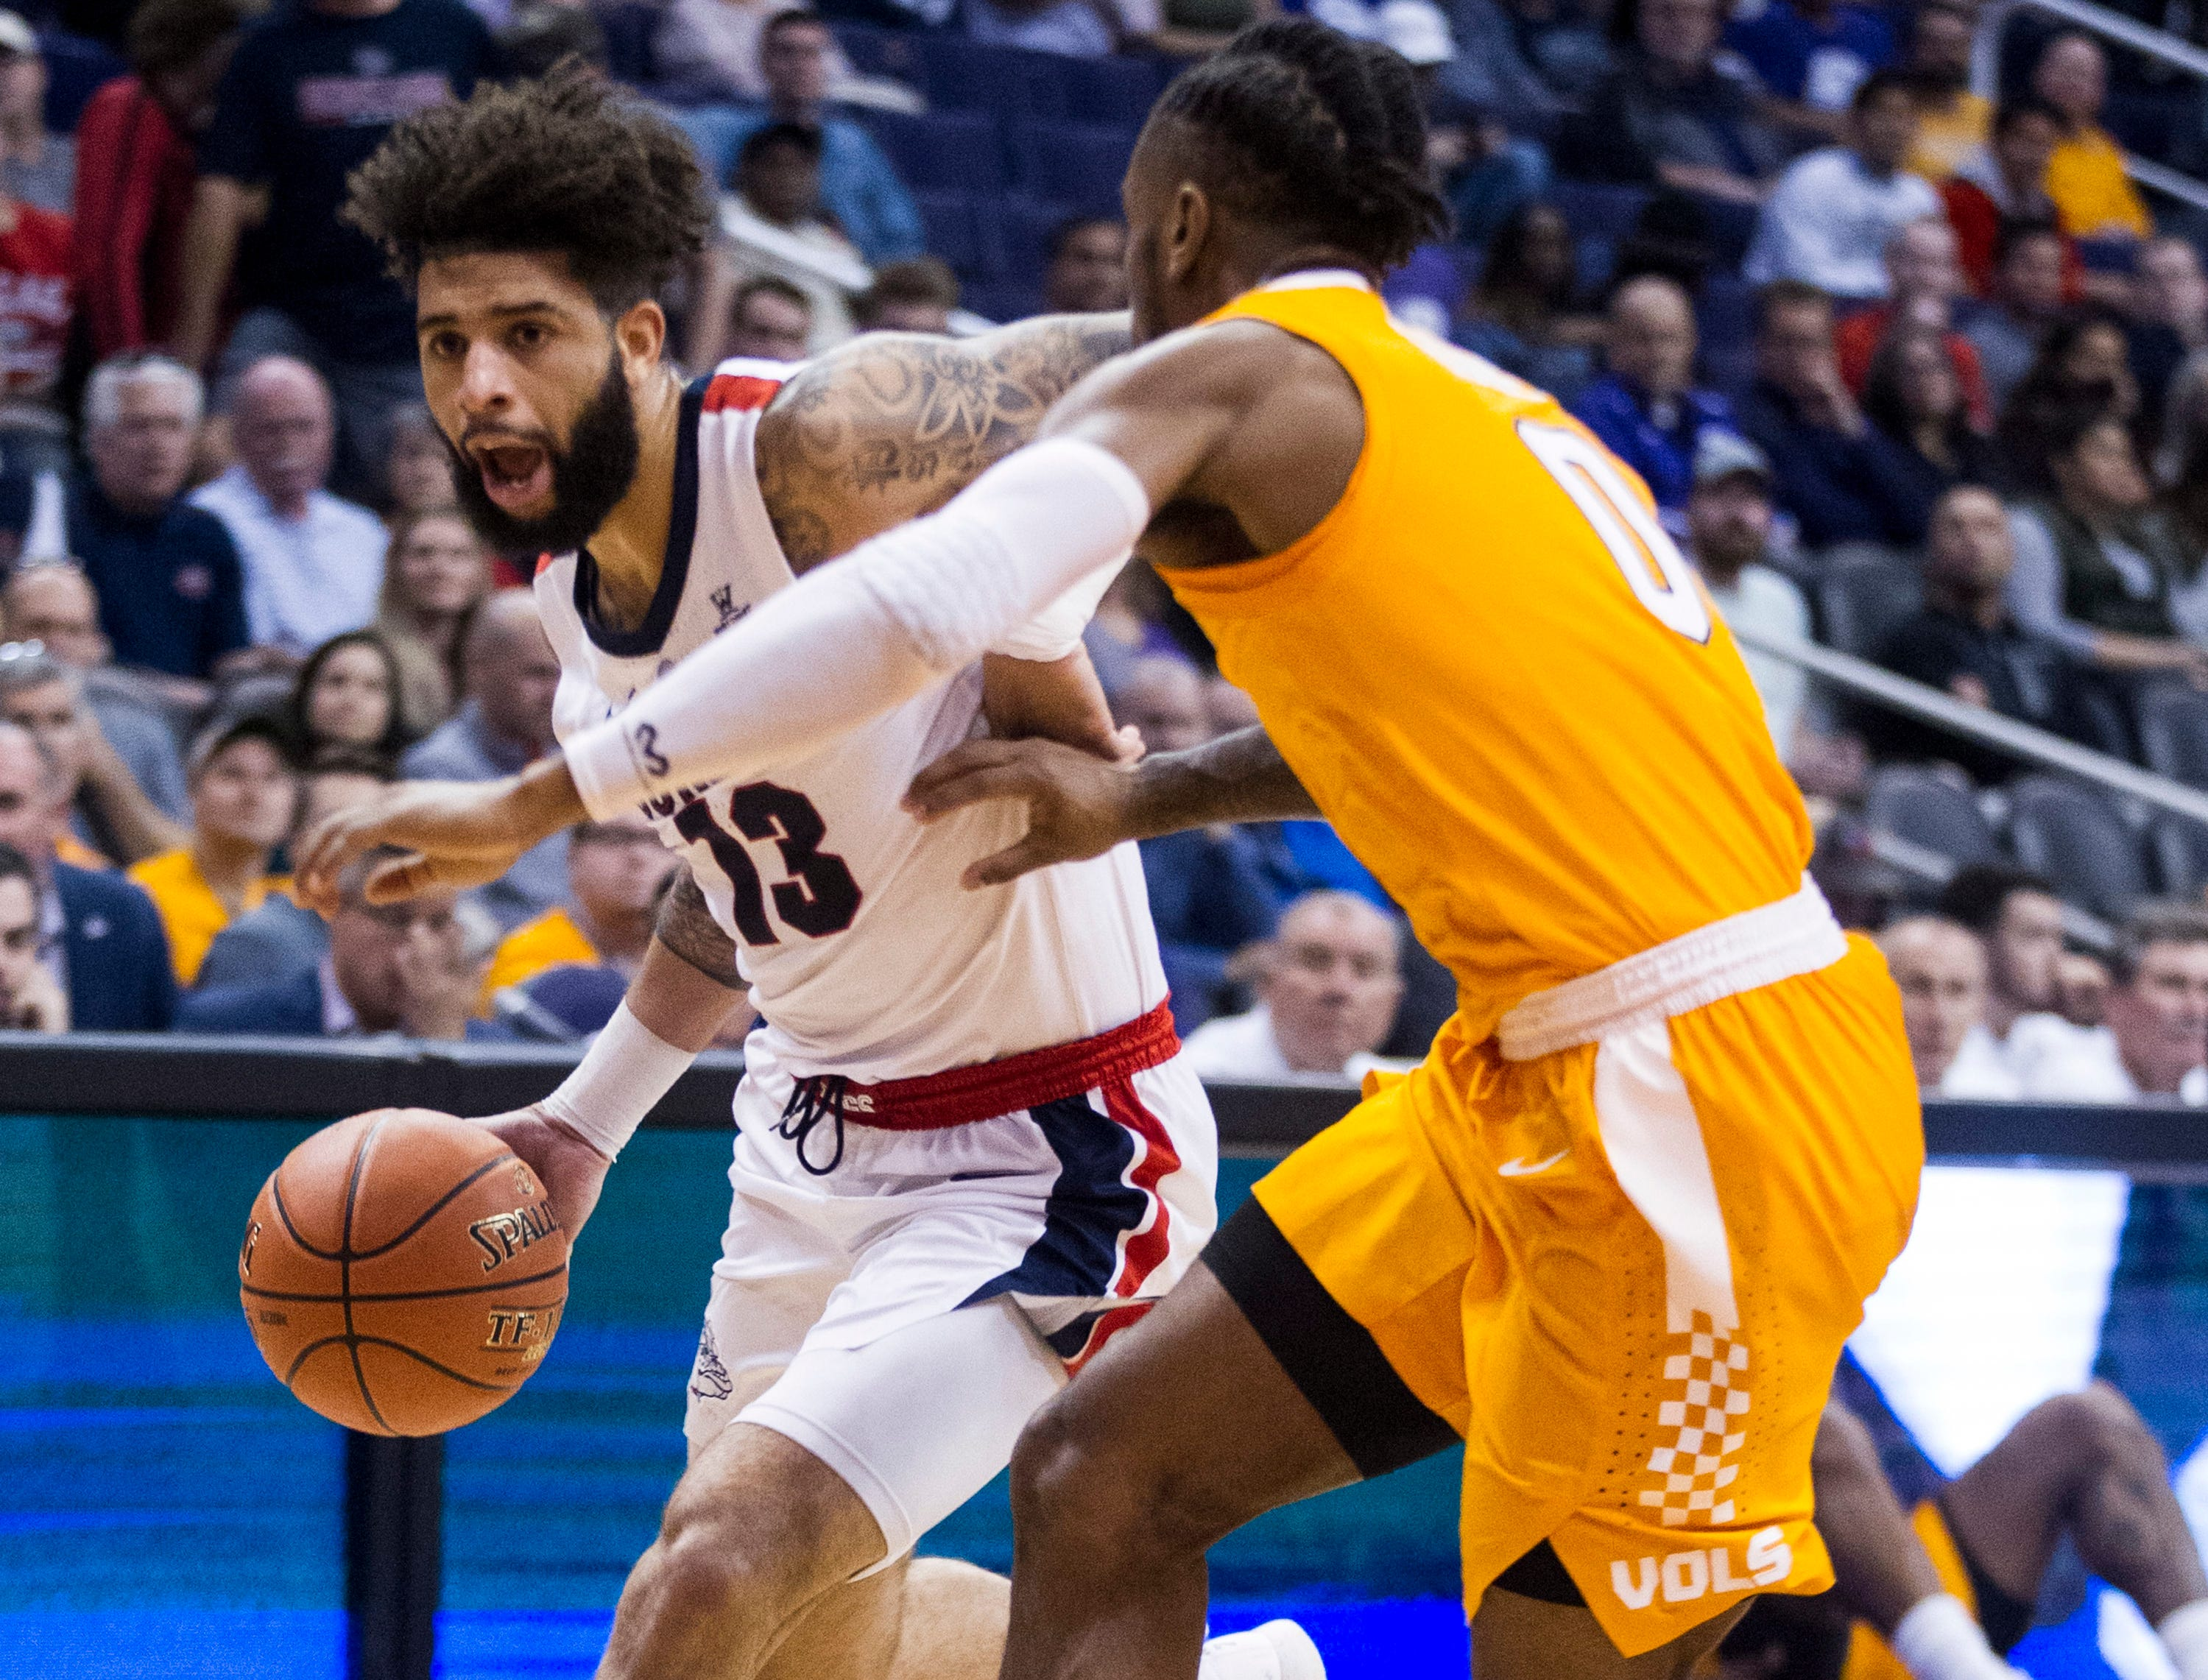 Gonzaga's Josh Perkins drives to the basket against Tennessee's Jordan Bone during the first half of an NCAA college basketball game Sunday, Dec. 9, 2018, in Phoenix.